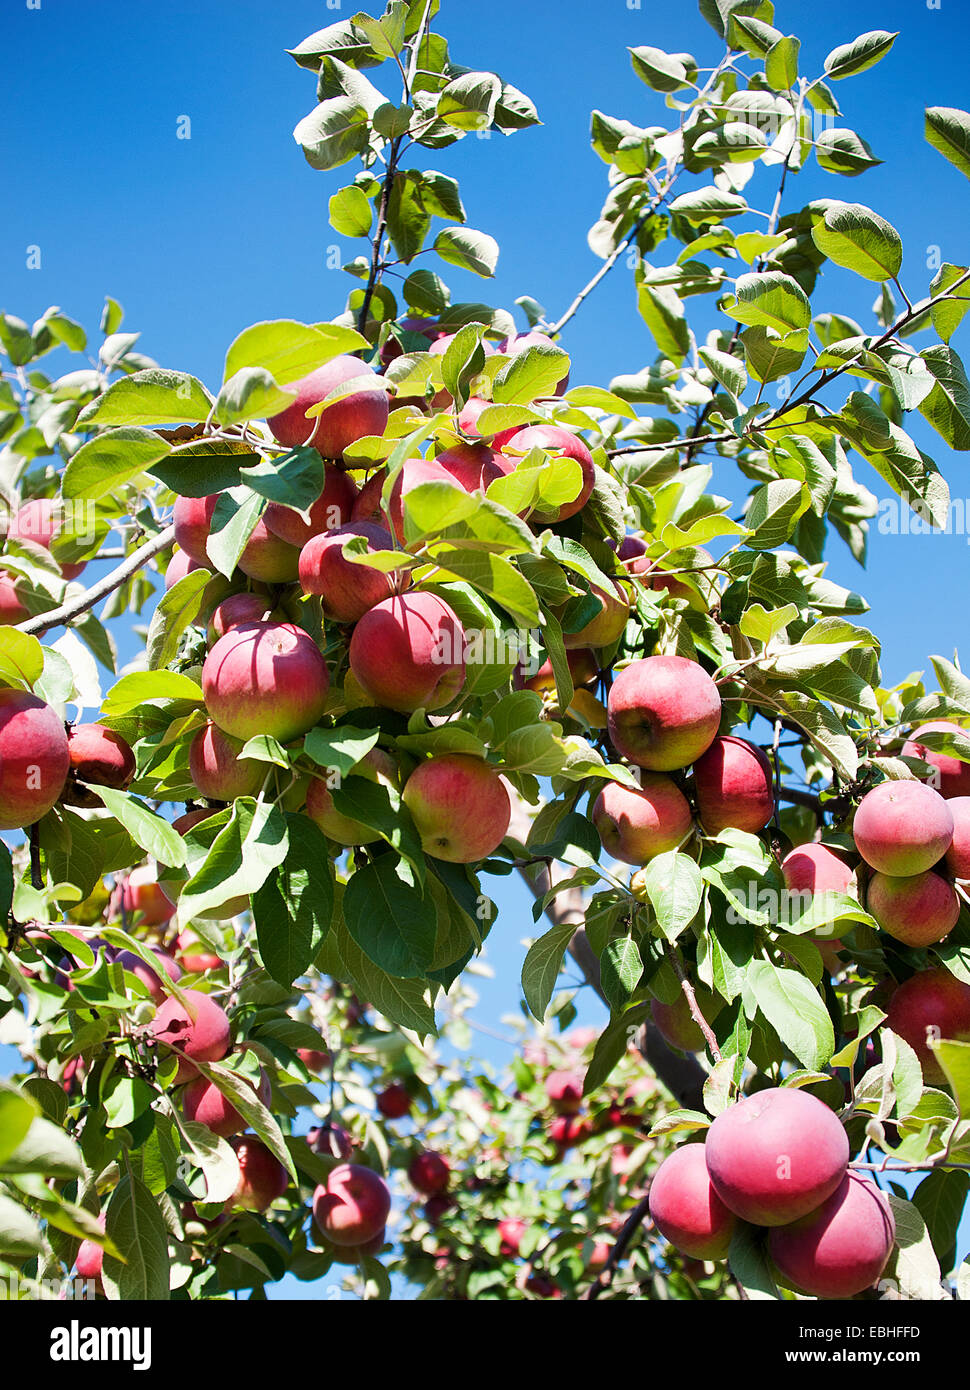 Apple tree with fruit - Stock Image